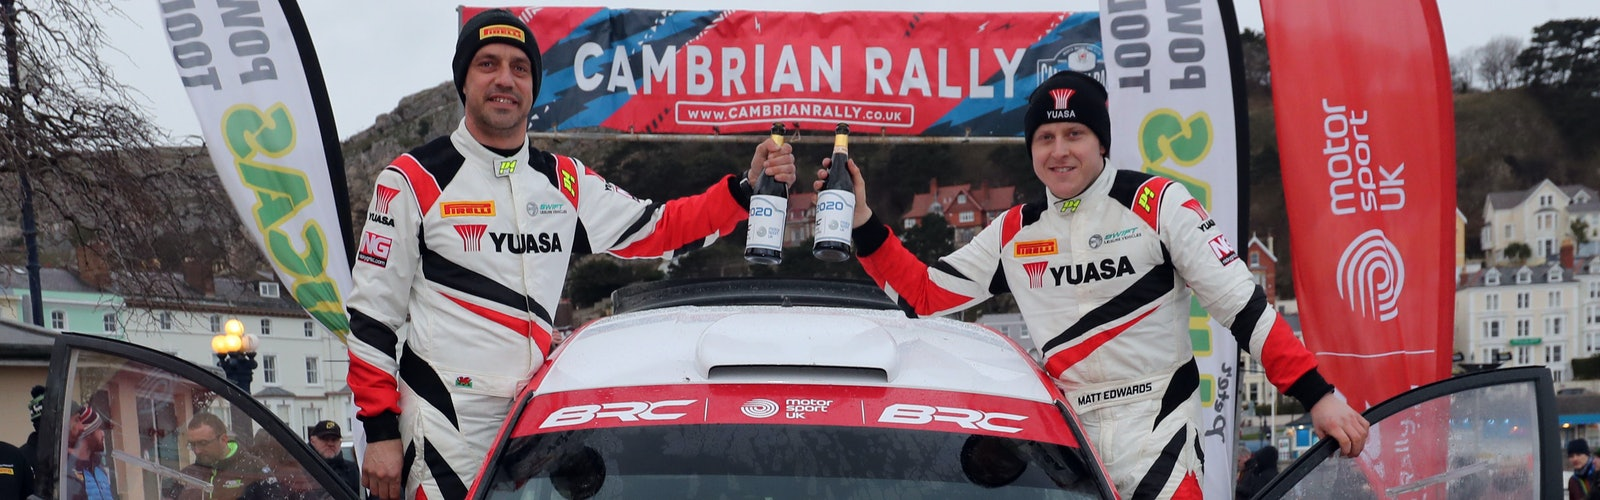 Matt Edwards wins Cambrian Rally British Rally Championship 2020